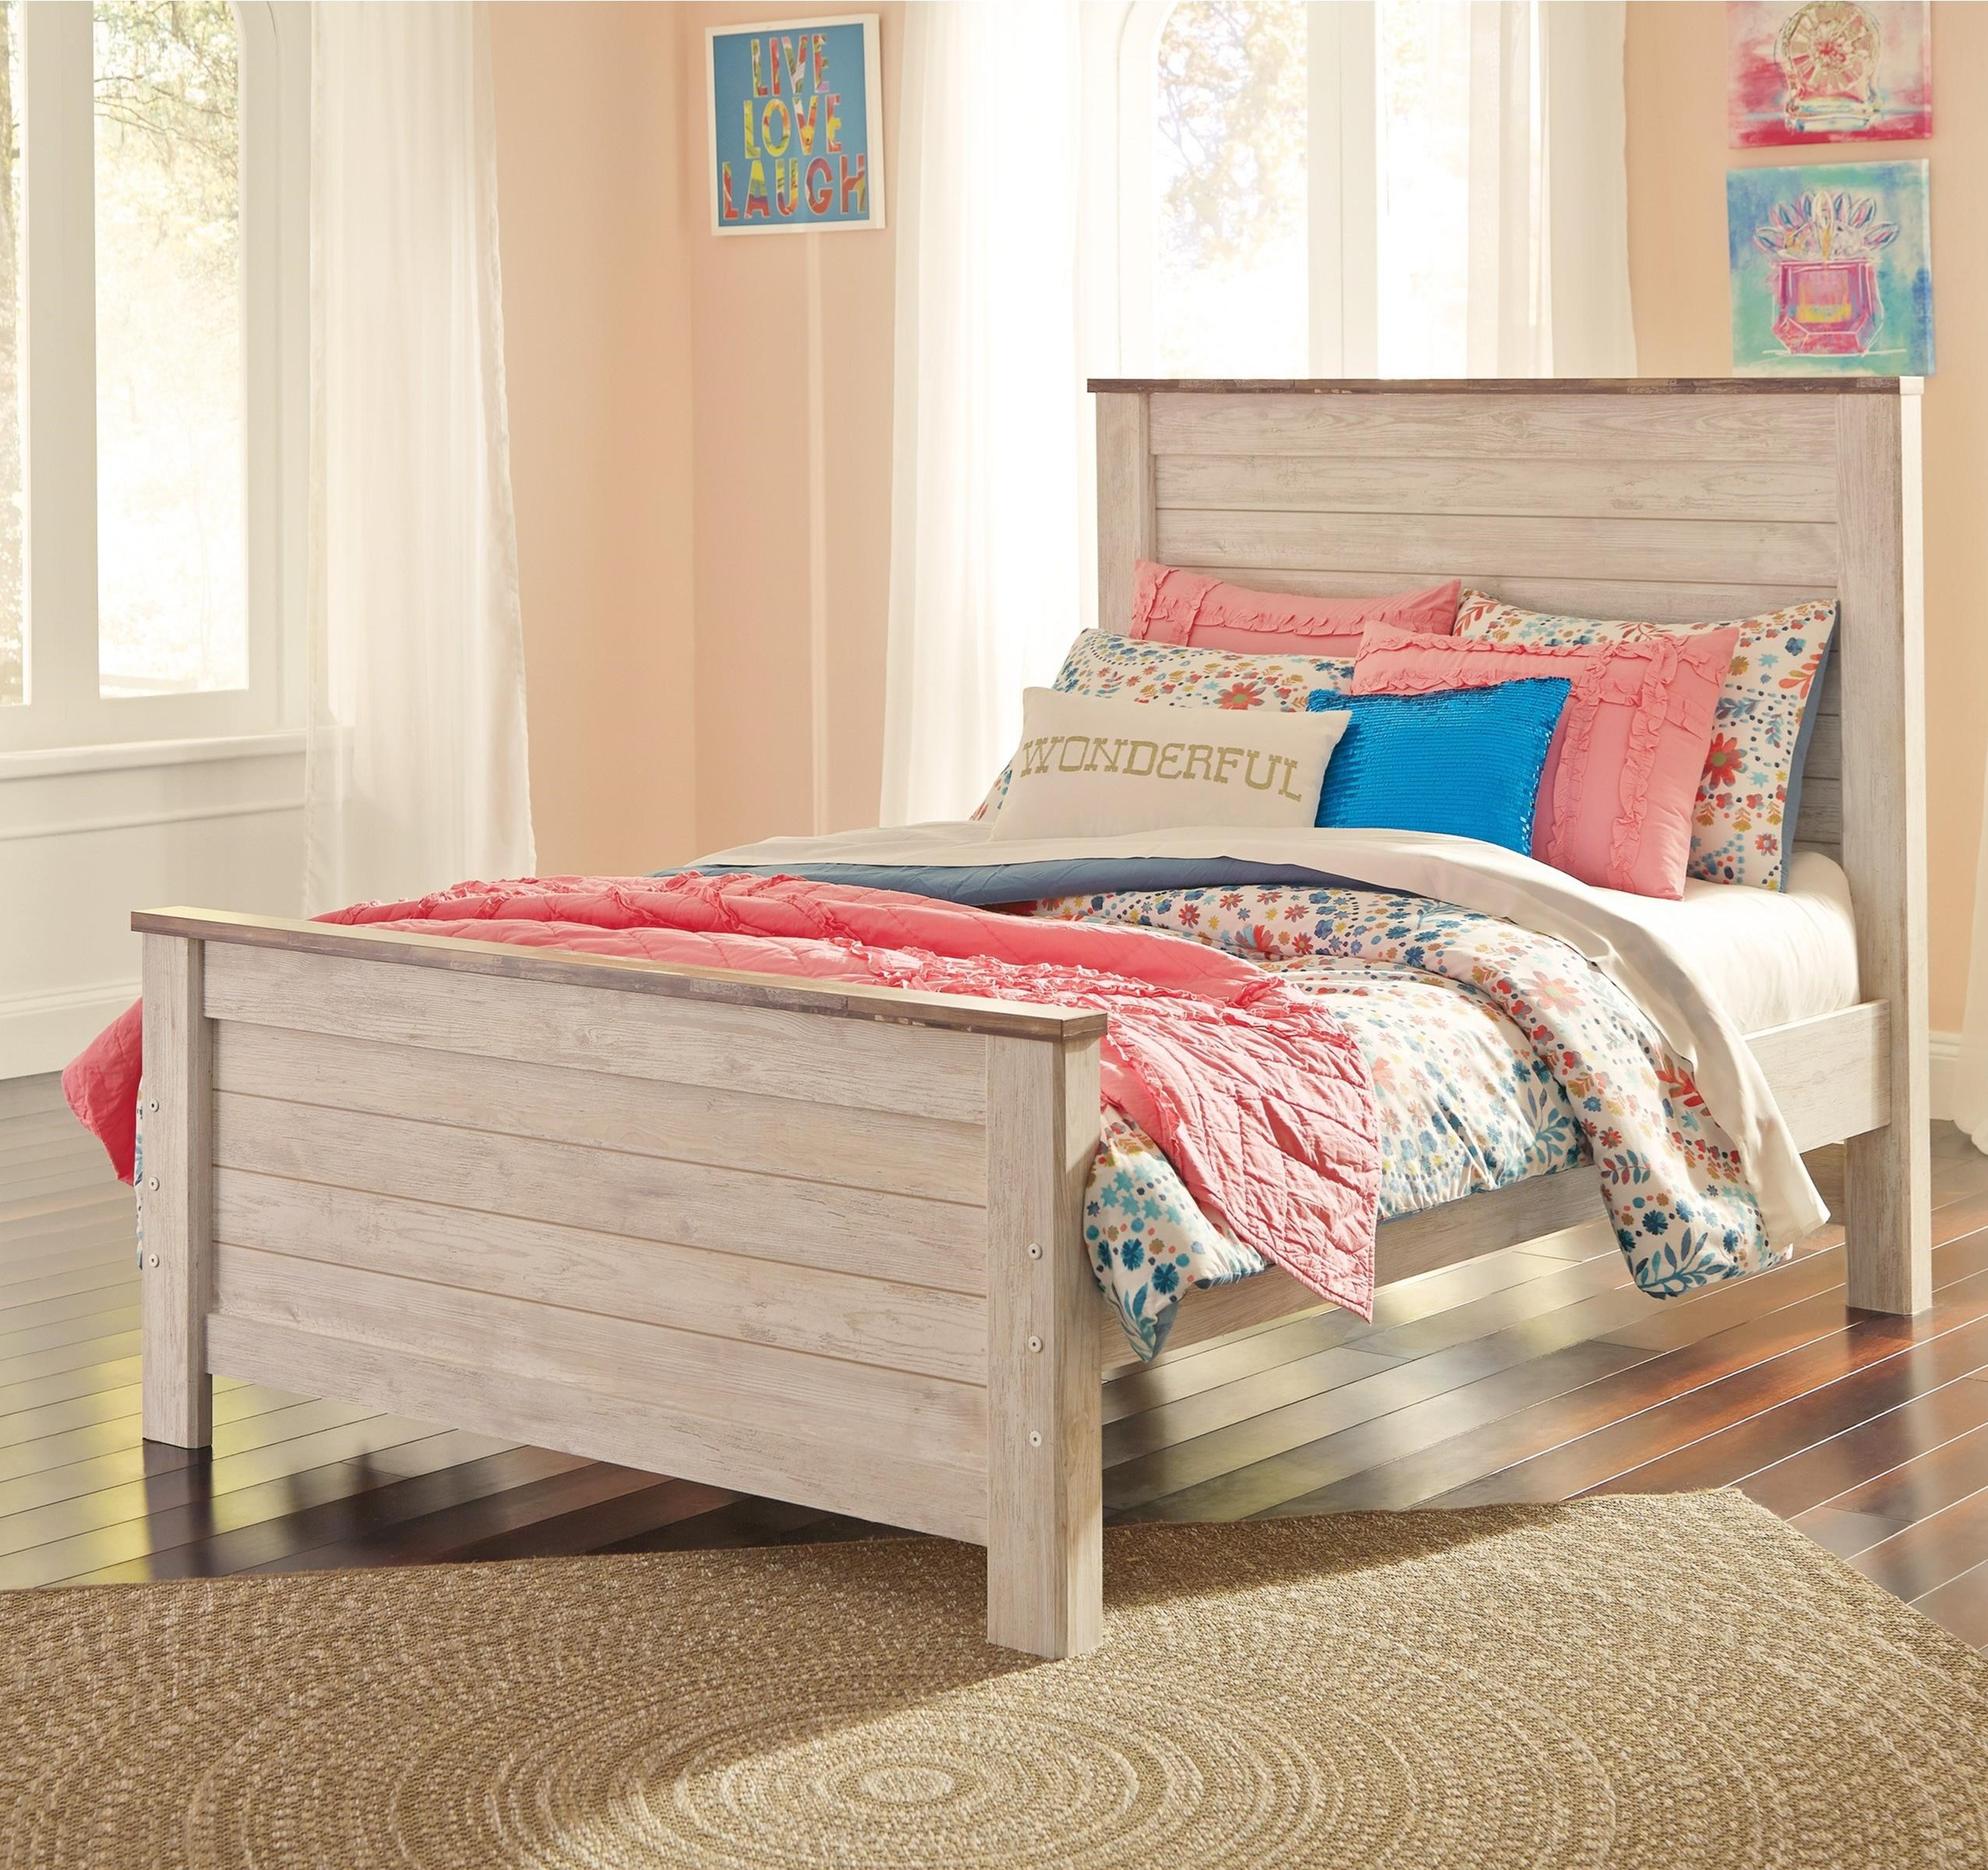 Willowton Full Panel Bed by Signature Design by Ashley at Zak's Warehouse Clearance Center